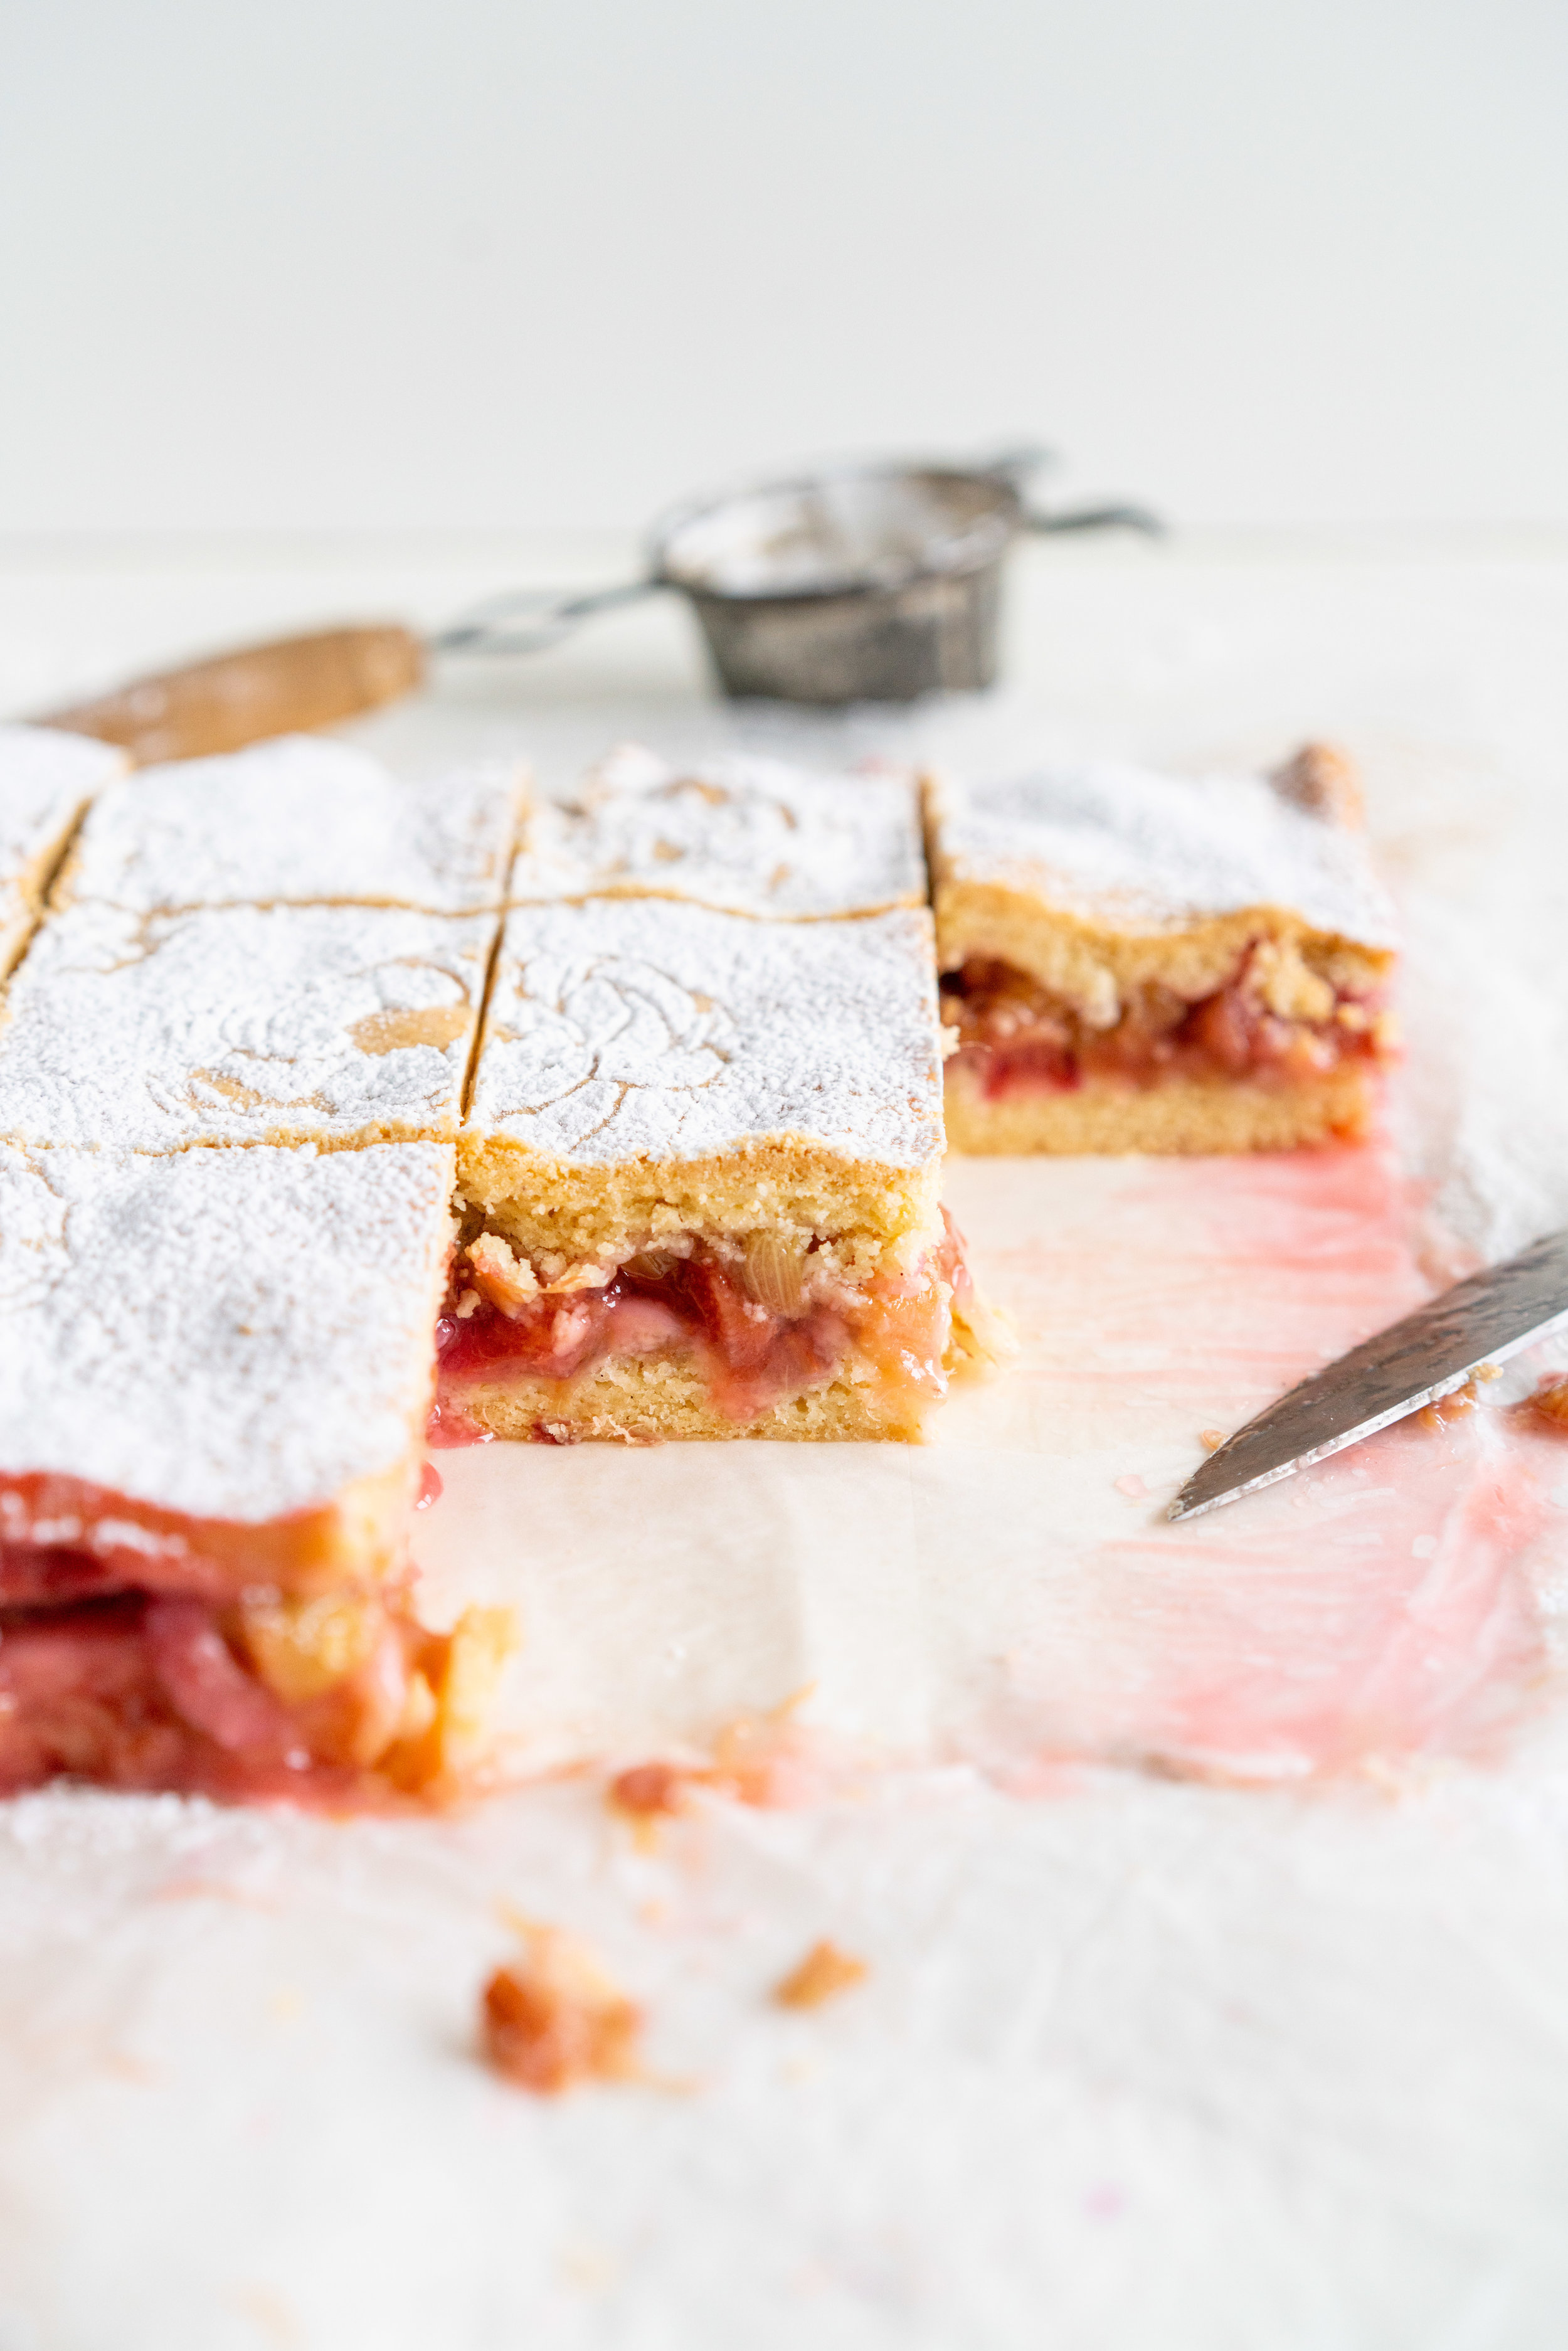 Rhubarb Shortcake Bars - Two layers of sweet, short pastry enclose a jammy, rhubarb centre. These rhubarb shortcake bars differ from traditional American shortcake in that they are all baked together, giving you a range in texture - crisp pastry, soft where it hits the tart rhubarb centre, and a dusting of powdered sugar to finish. This recipe is amazingly versatile and works great with any stone fruit or berries. #rhubarb #rhubarbshortcake #shortcake #newzealandshortcake shortcake bars.jpg